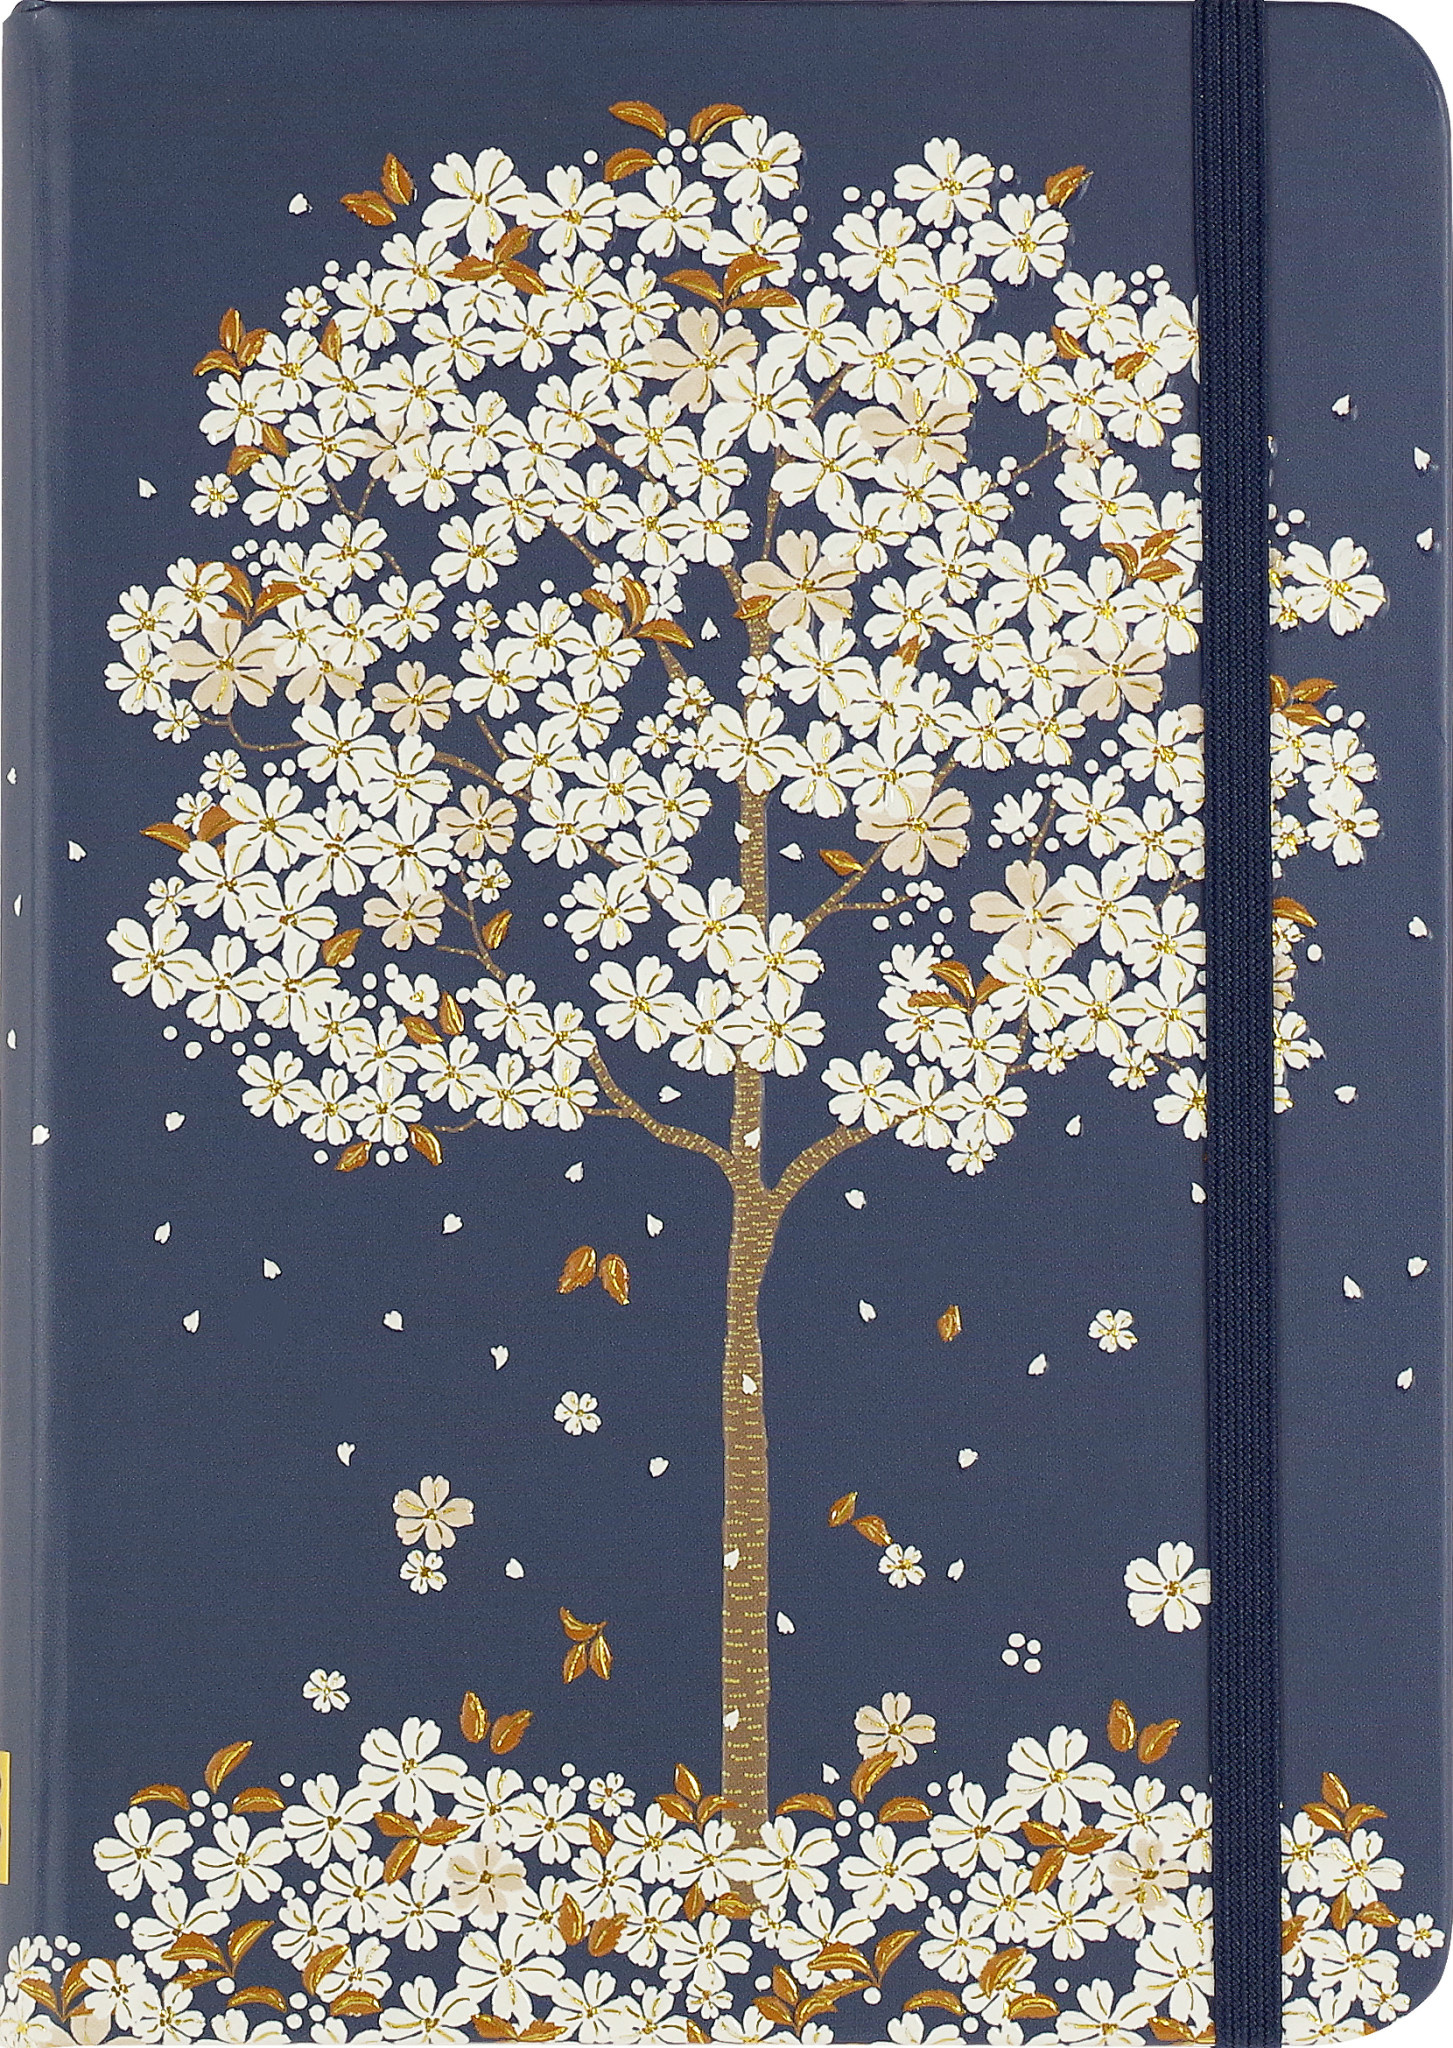 Falling Blossoms Journal